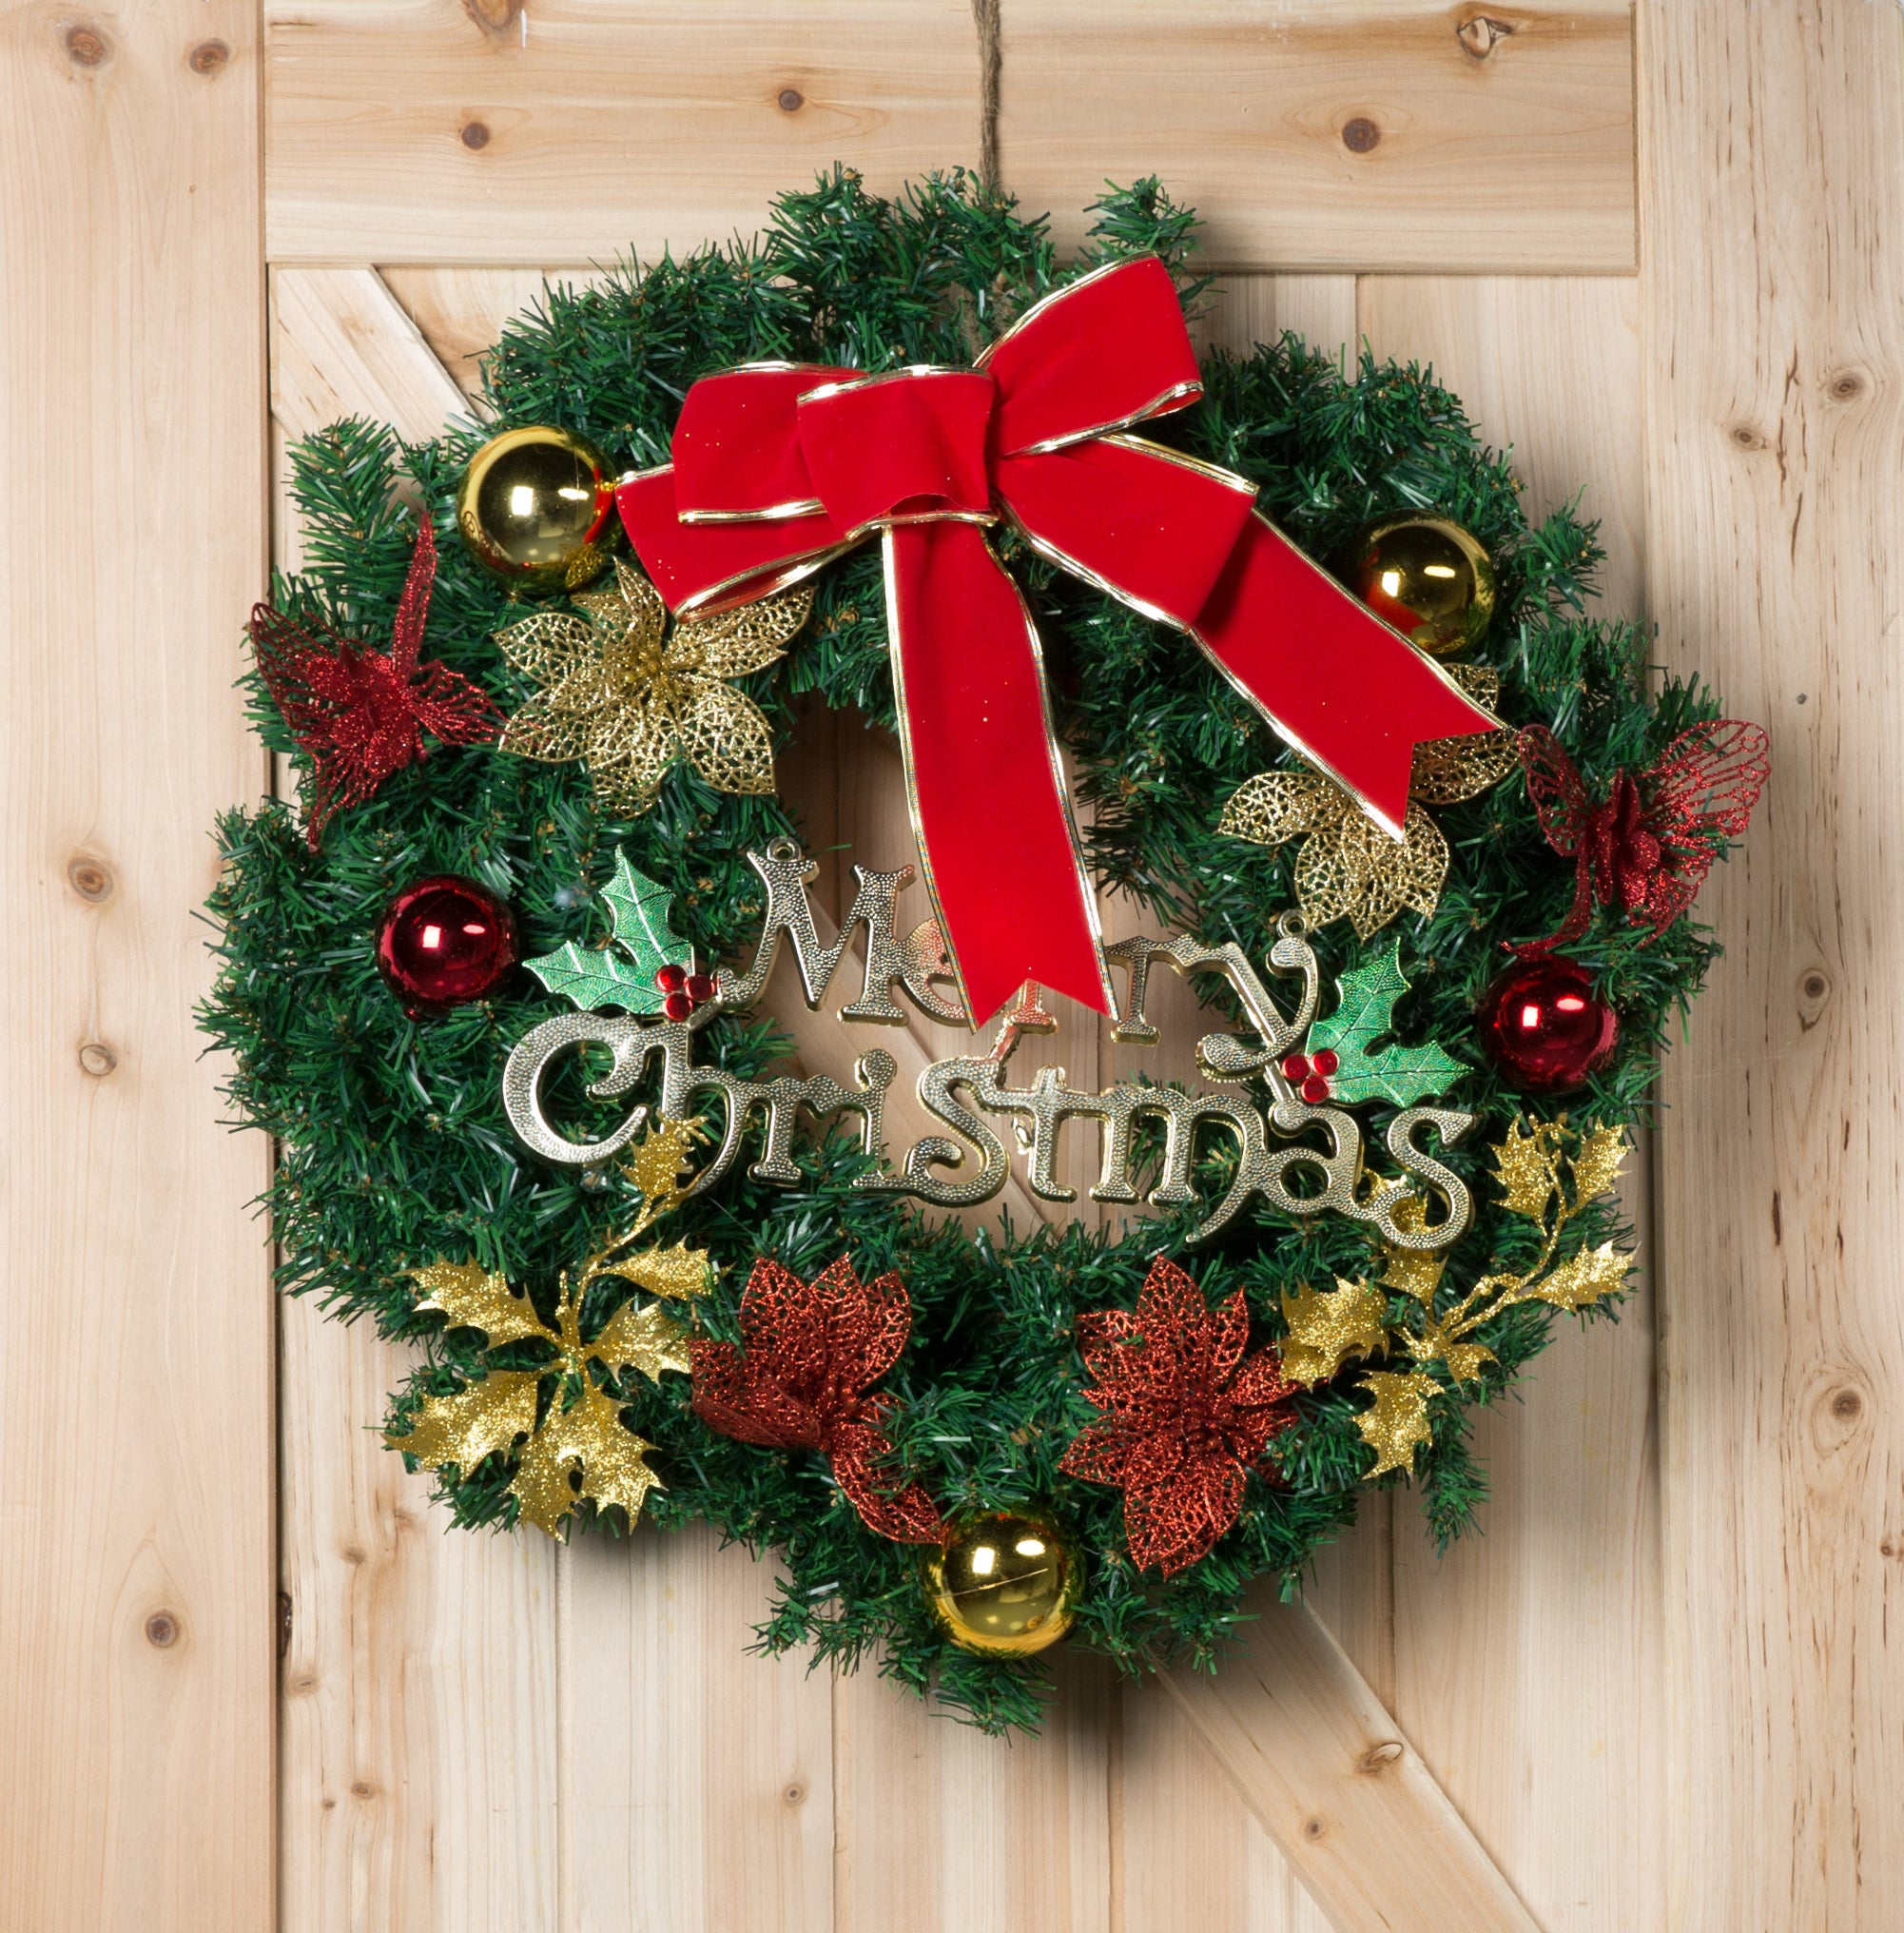 Load image into Gallery viewer, Kate Christmas 24 Inch Holly Outdoor Christmas Wreaths Garland Ornaments Red Berry for Windows